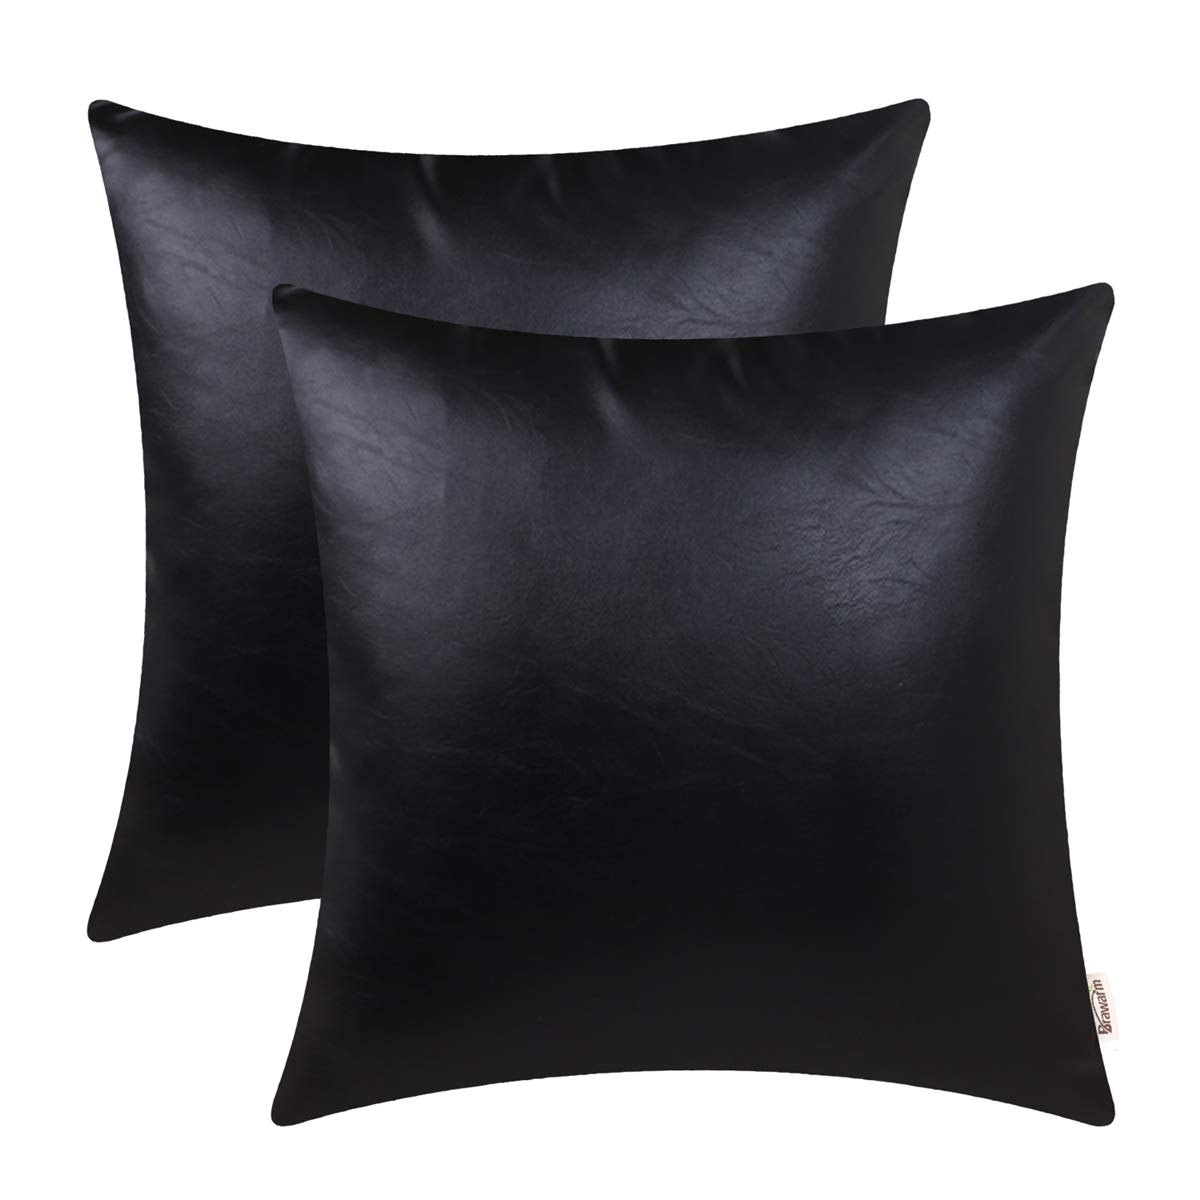 BRAWARM Pack of 2 Cozy Throw Pillow Covers Cases for Couch Sofa Home Decoration Solid Dyed Soft Faux Leather Both Sides 22 X 22 Inches Black